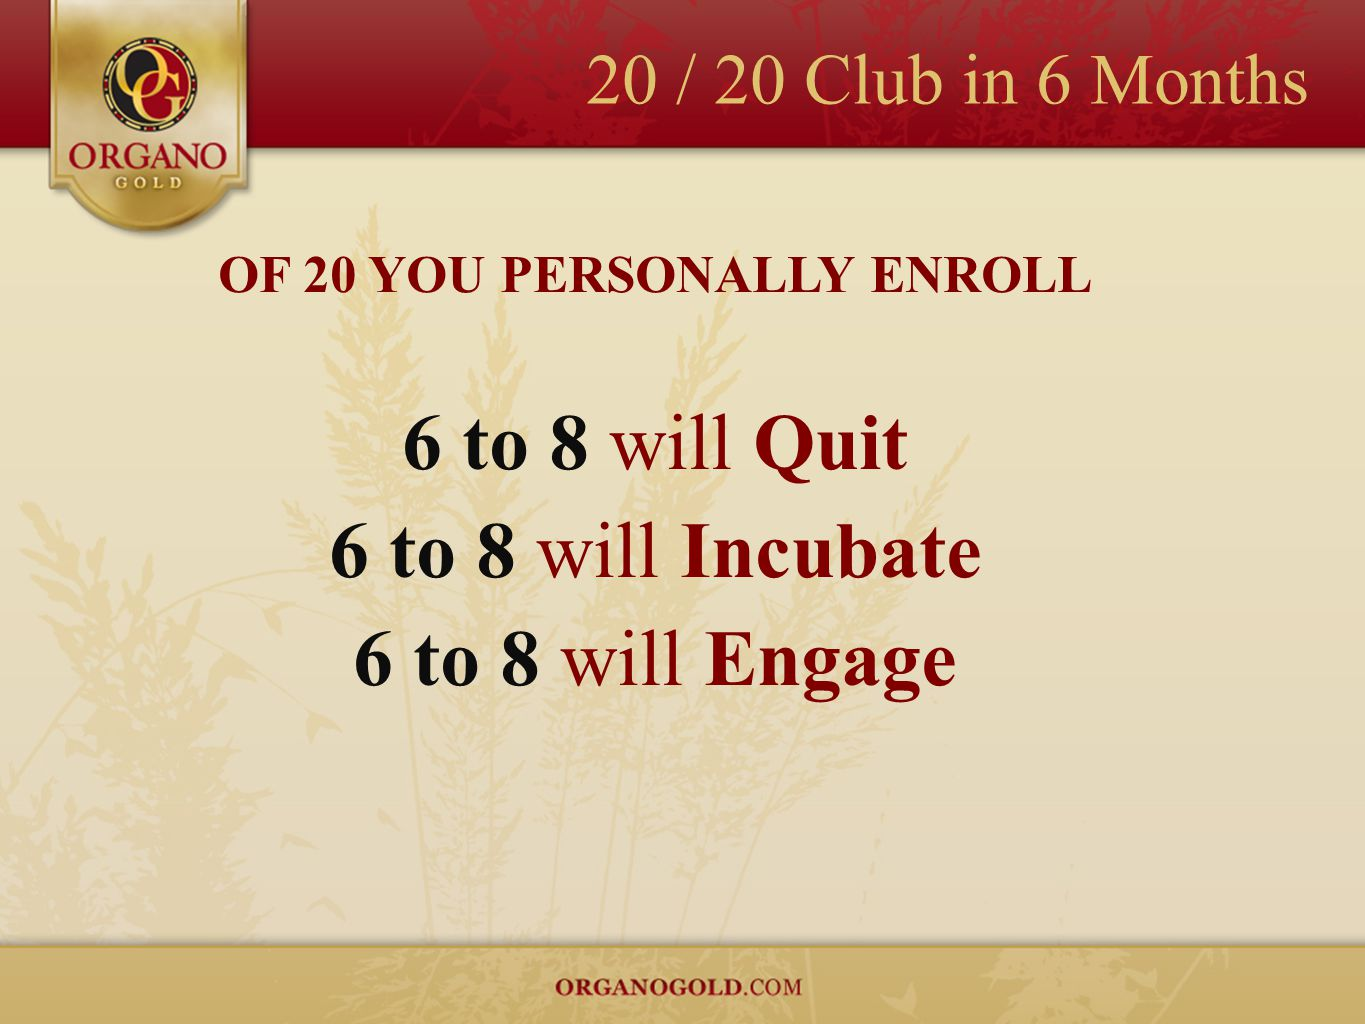 20 / 20 Club in 6 Months OF 20 YOU PERSONALLY ENROLL 6 to 8 will Quit 6 to 8 will Incubate 6 to 8 will Engage